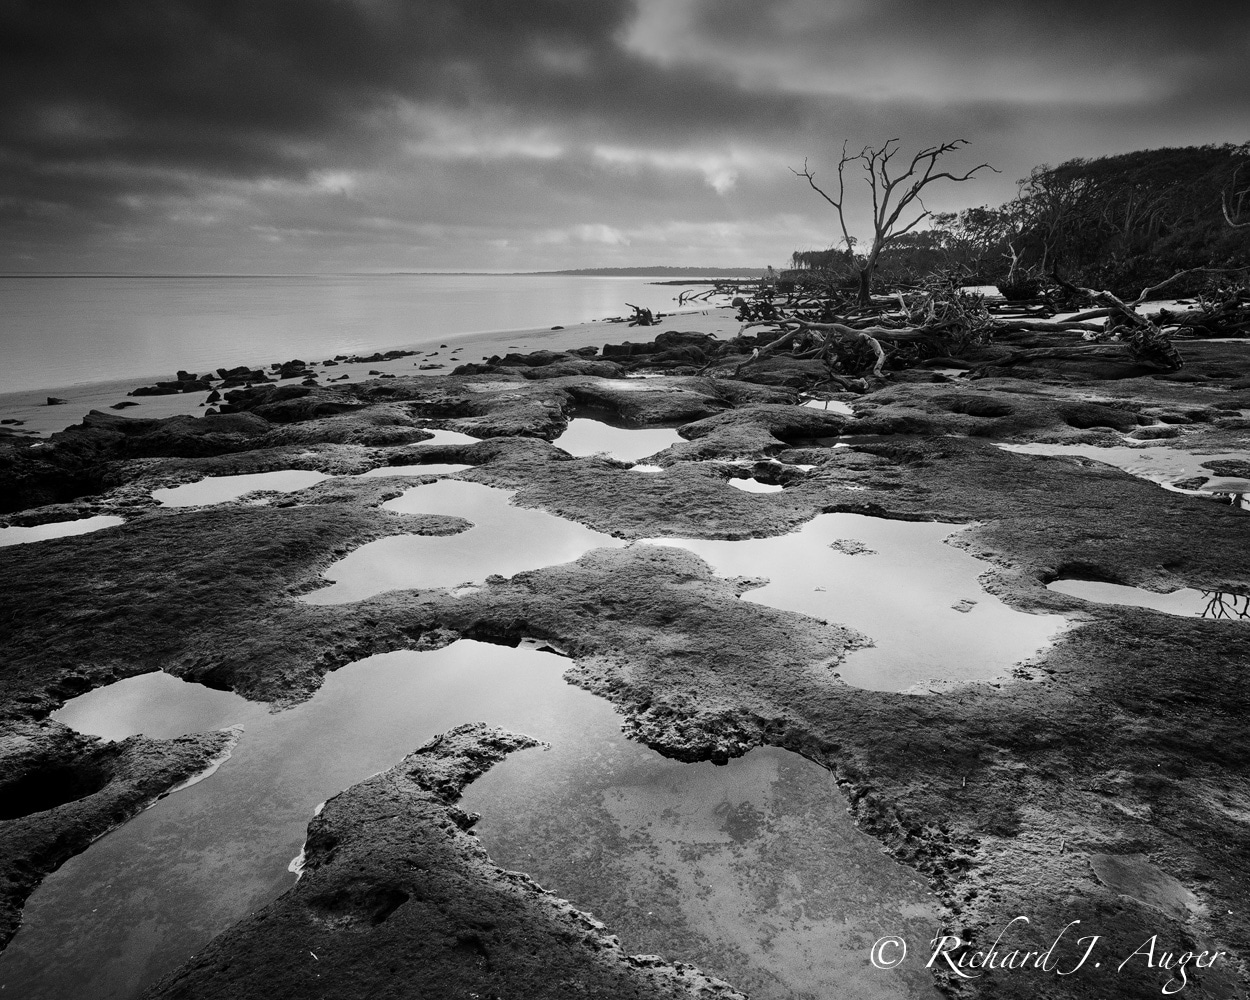 Bit Talbot Island State Park, Nassau County, Florida, Black Rock, Anastasia Limestone, Reflection Pools, Black and White, Driftwood, Beach, Ocean